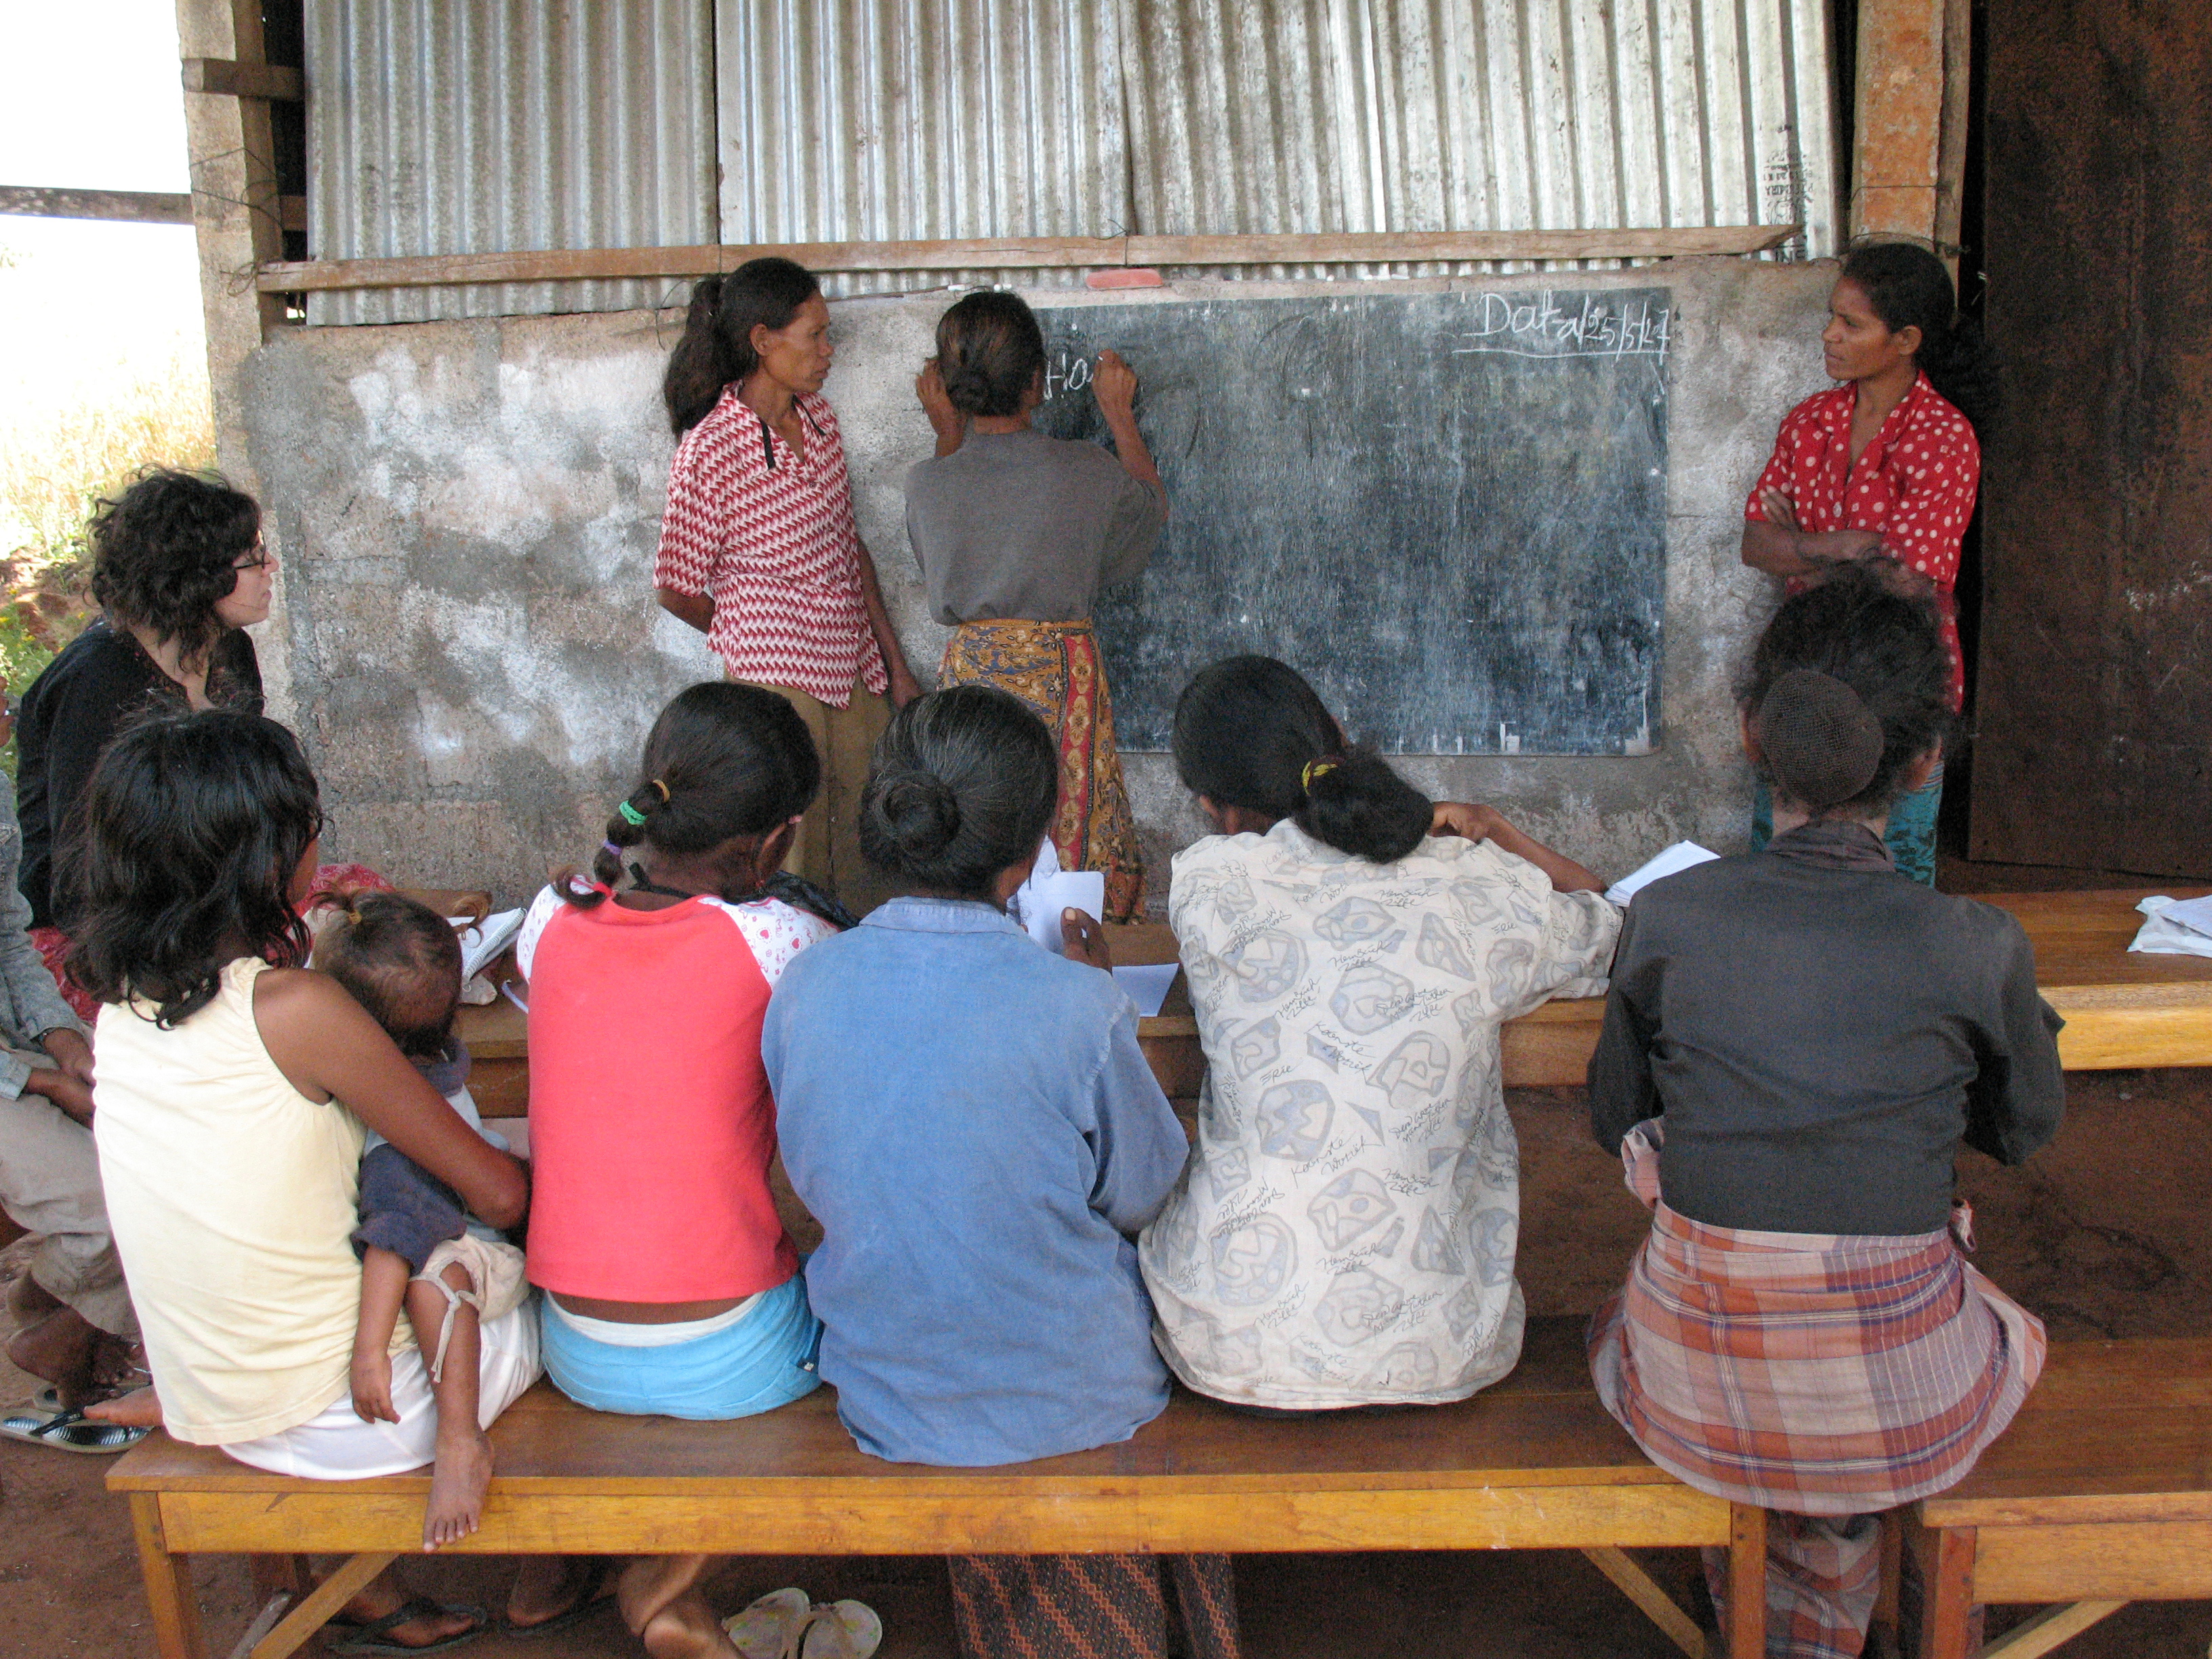 Village women experience new freedom through learning and talking together, in Timor-Leste. Photo by Erin McKinnon/IWDA